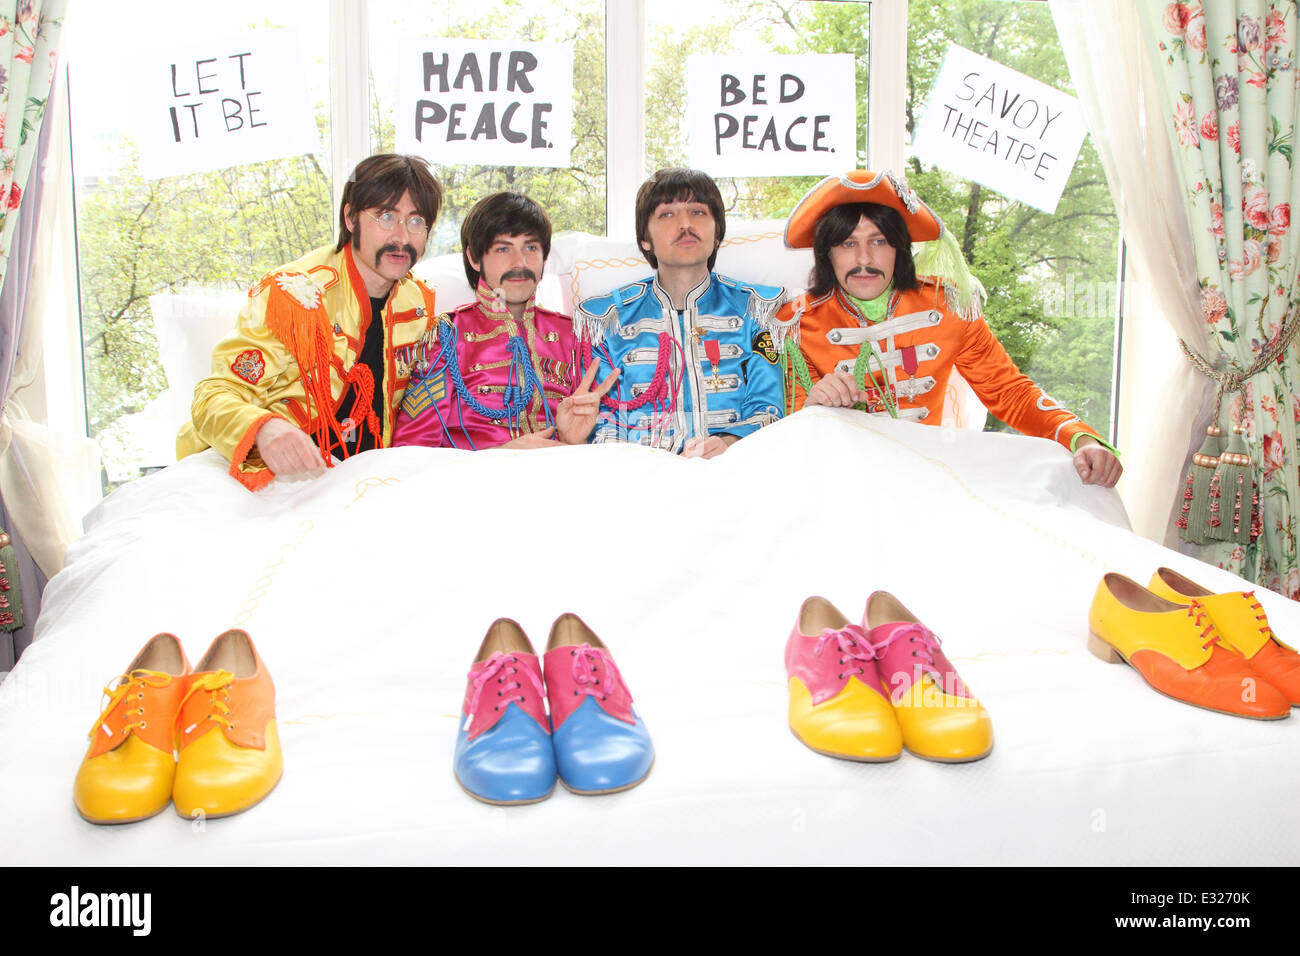 The Cast Of Beatles Show Let It Be Recreate The John Lennon And Stock Photo Alamy